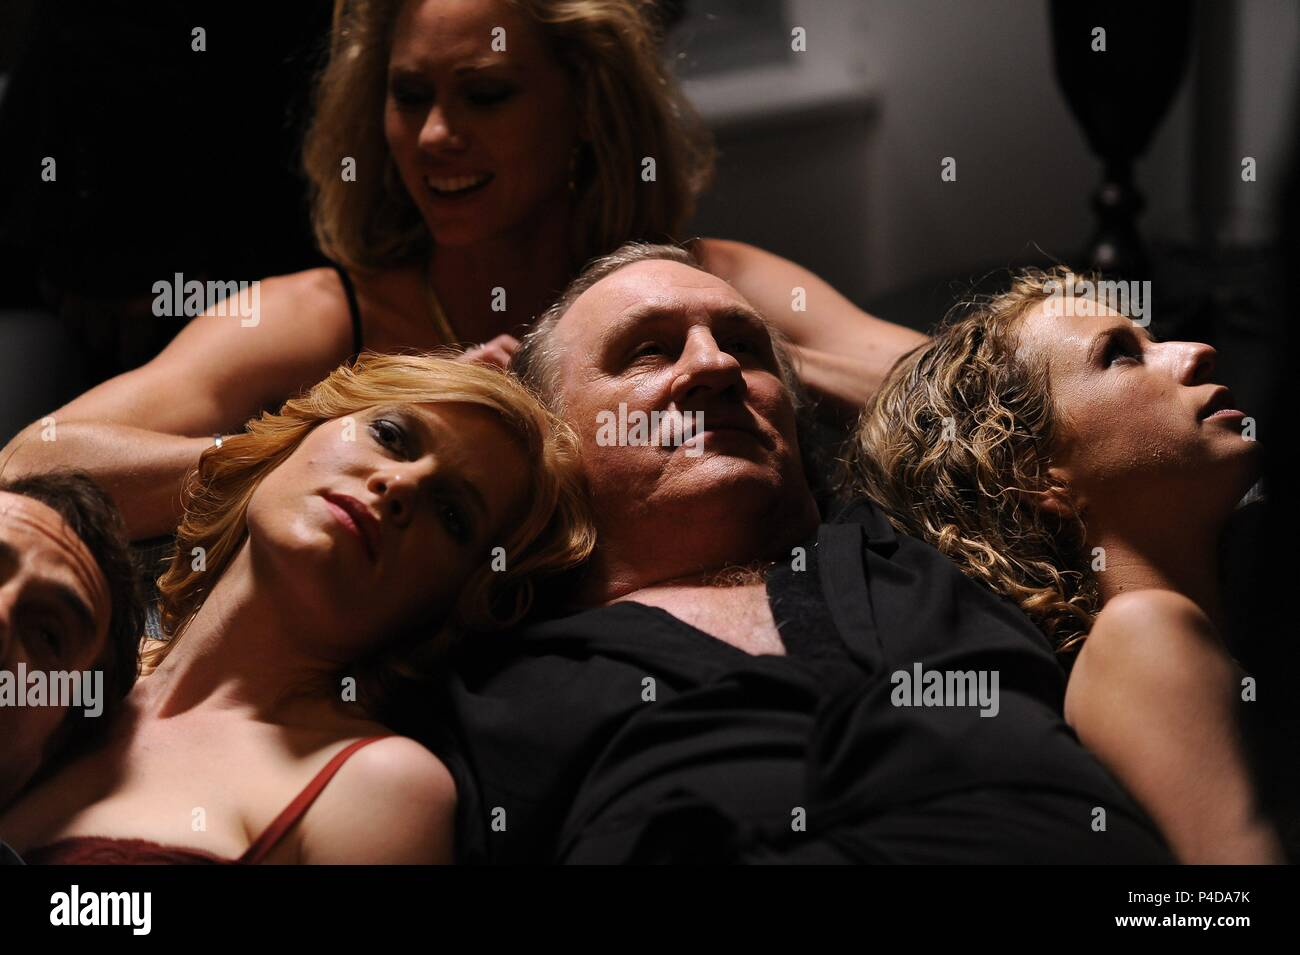 Original Film Title: WELCOME TO NEW YORK.  English Title: WELCOME TO NEW YORK.  Film Director: ABEL FERRARA.  Year: 2014.  Stars: GERARD DEPARDIEU. Credit: BELLADONNA PRODUCTIONS/WILD BUNCH / Album - Stock Image